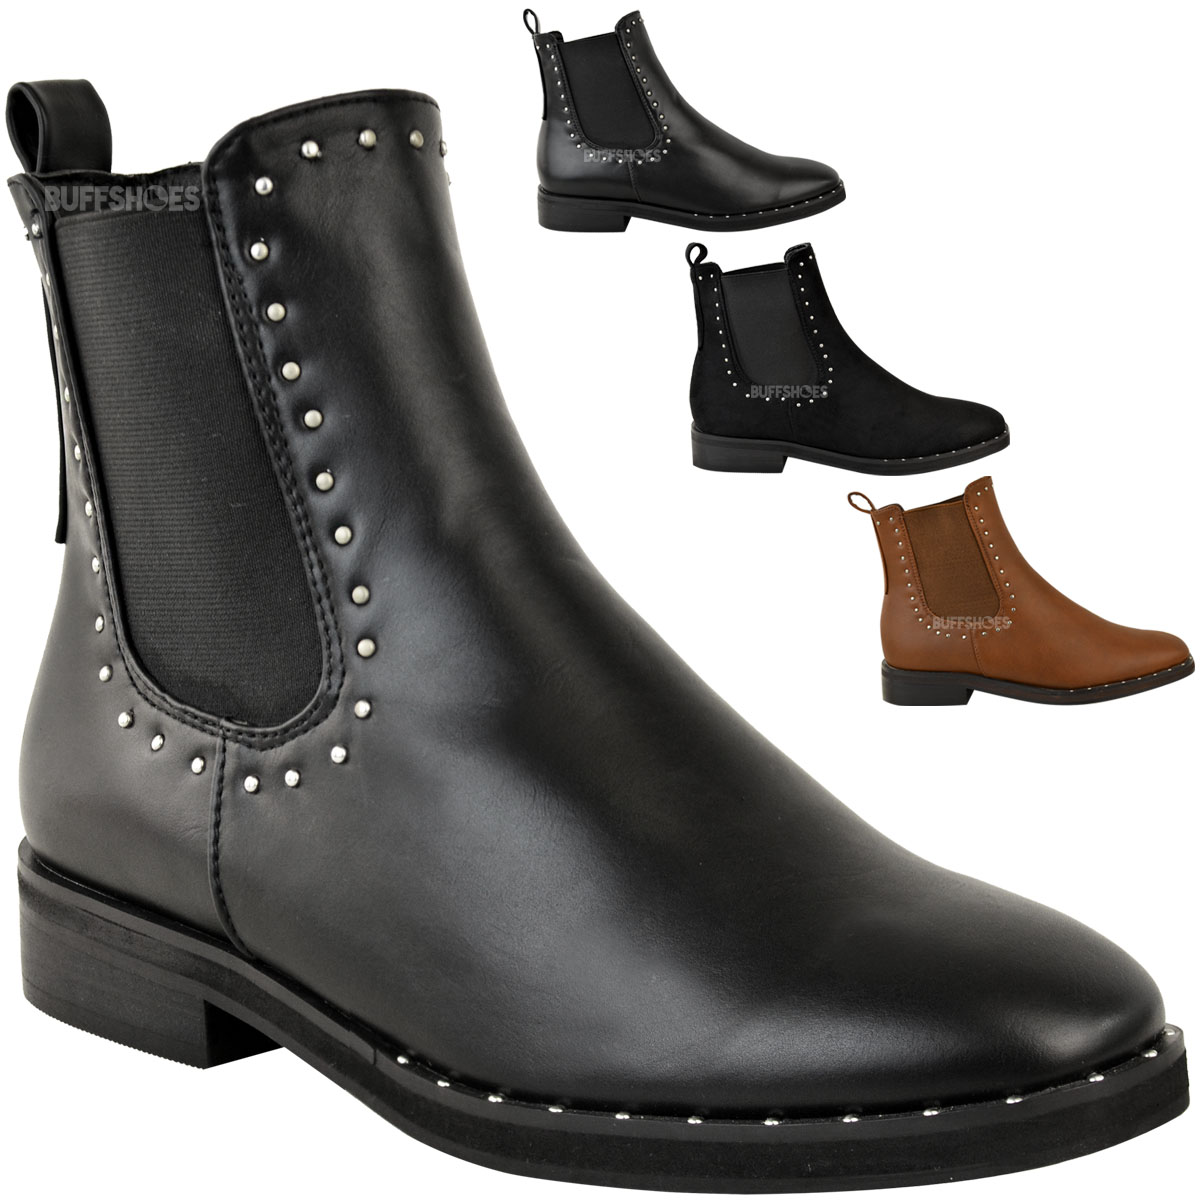 Womens Flat Studded Chelsea Ankle Boots Elasticated Shoes Size